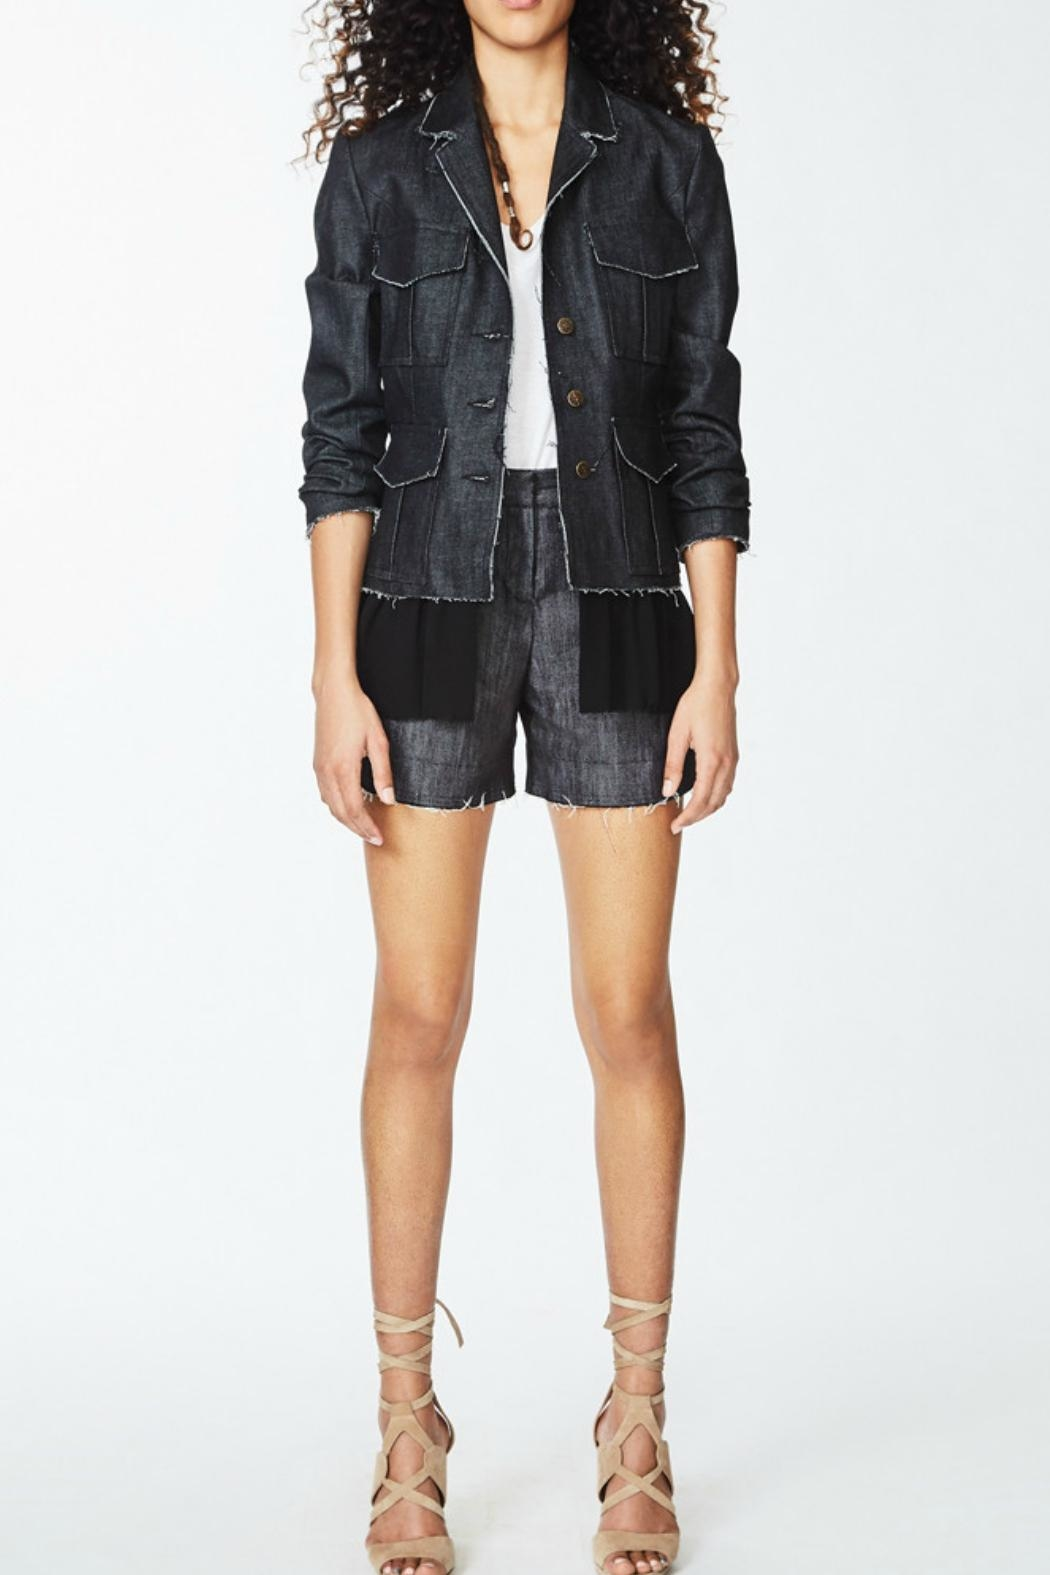 Nicole Miller Denim Combo Jacket - Main Image